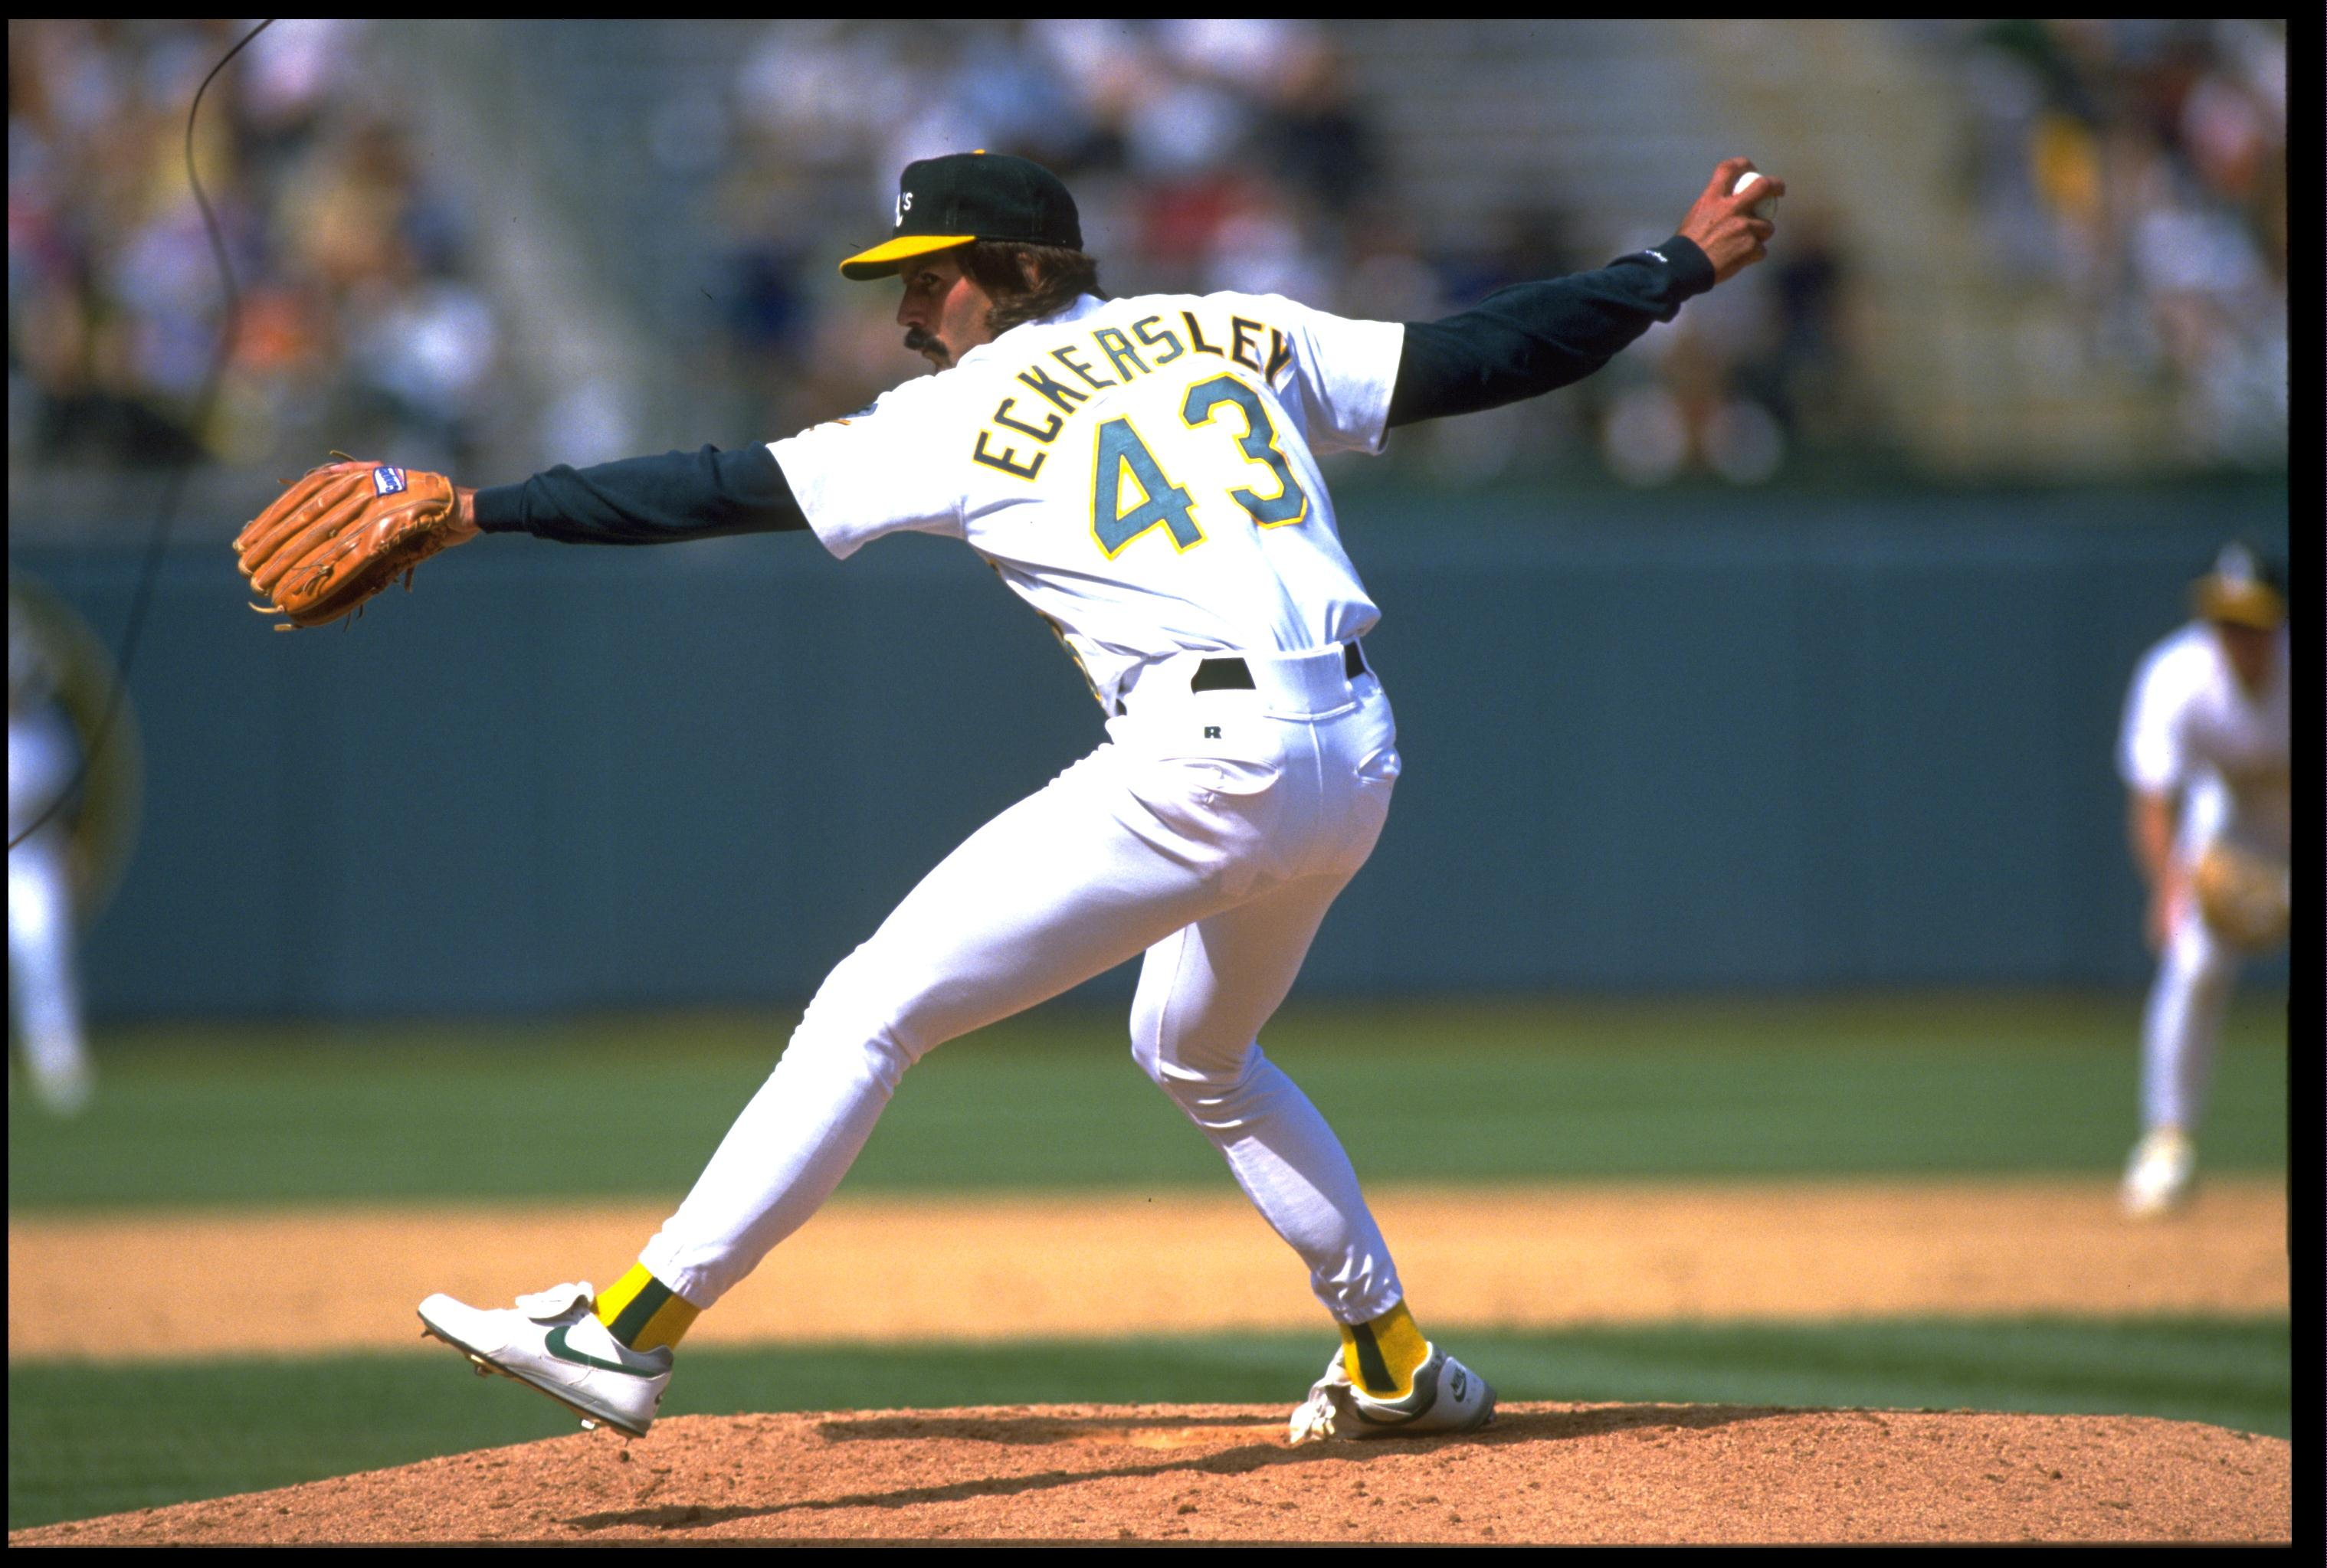 25 APR 1993:  DENNIS ECKERSLEY, RELIEF PITCHER FOR THE OAKLAND A''S, DELIVERS A PITCH AGAINST THE CLEVELAND INDIANS AT THE OAKLAND COLISEUM IN OAKLAND, CALIFORNIA.  MANDATORY CREDIT: OTTO GREULE/ALLSPORT.